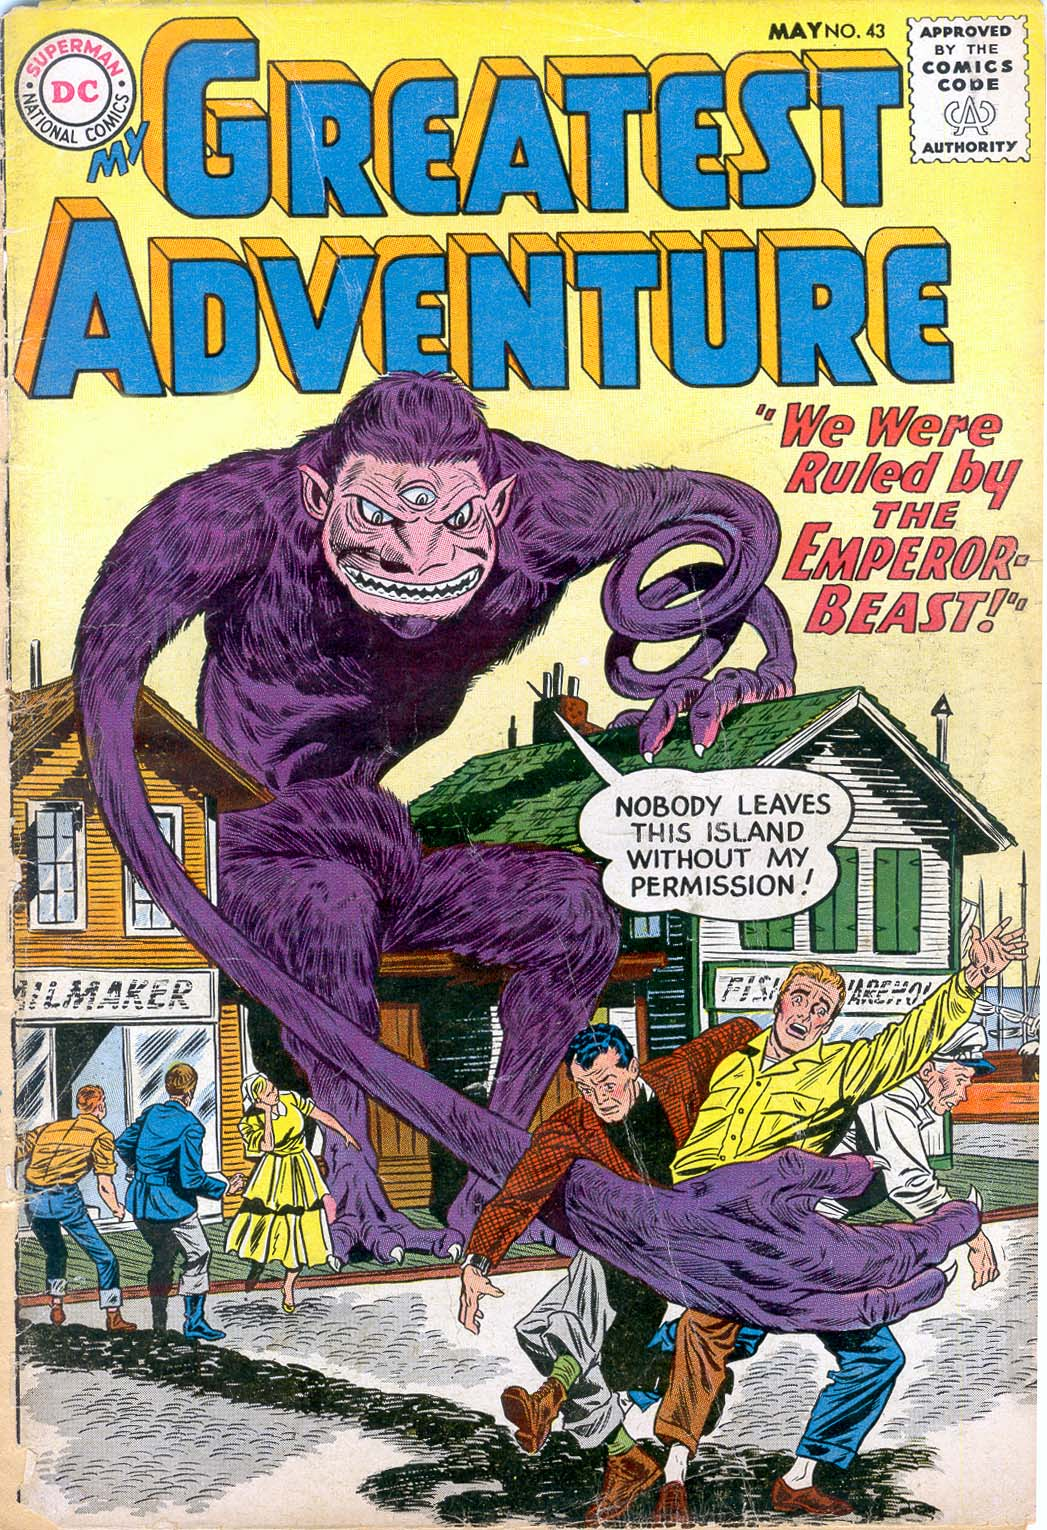 My Greatest Adventure (1955) issue 43 - Page 1